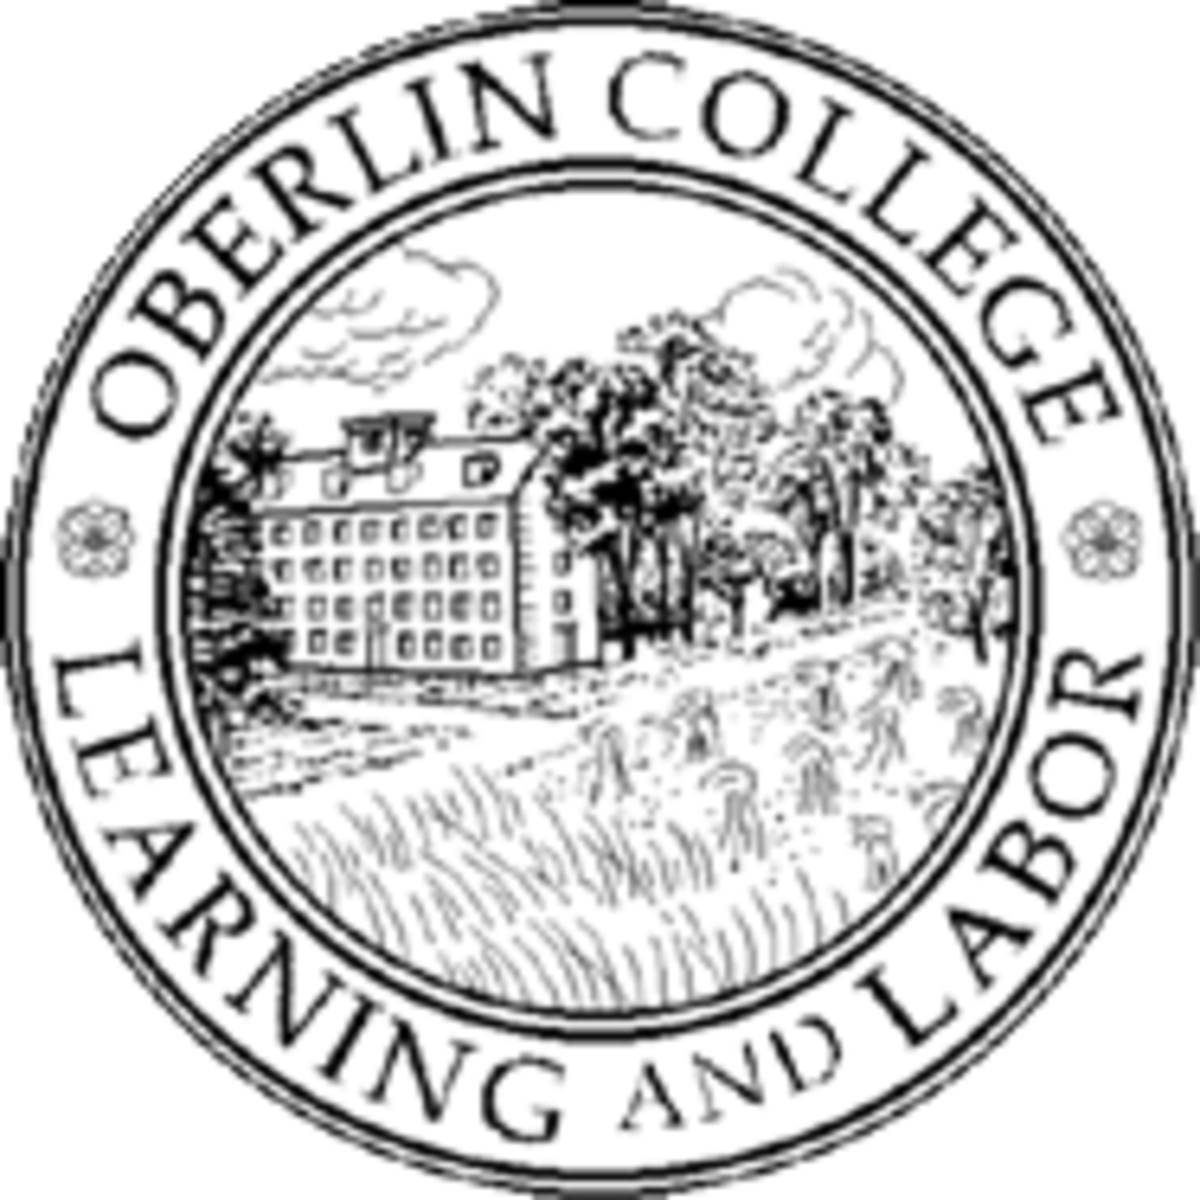 Beth Davis was an Oberlin College graduate